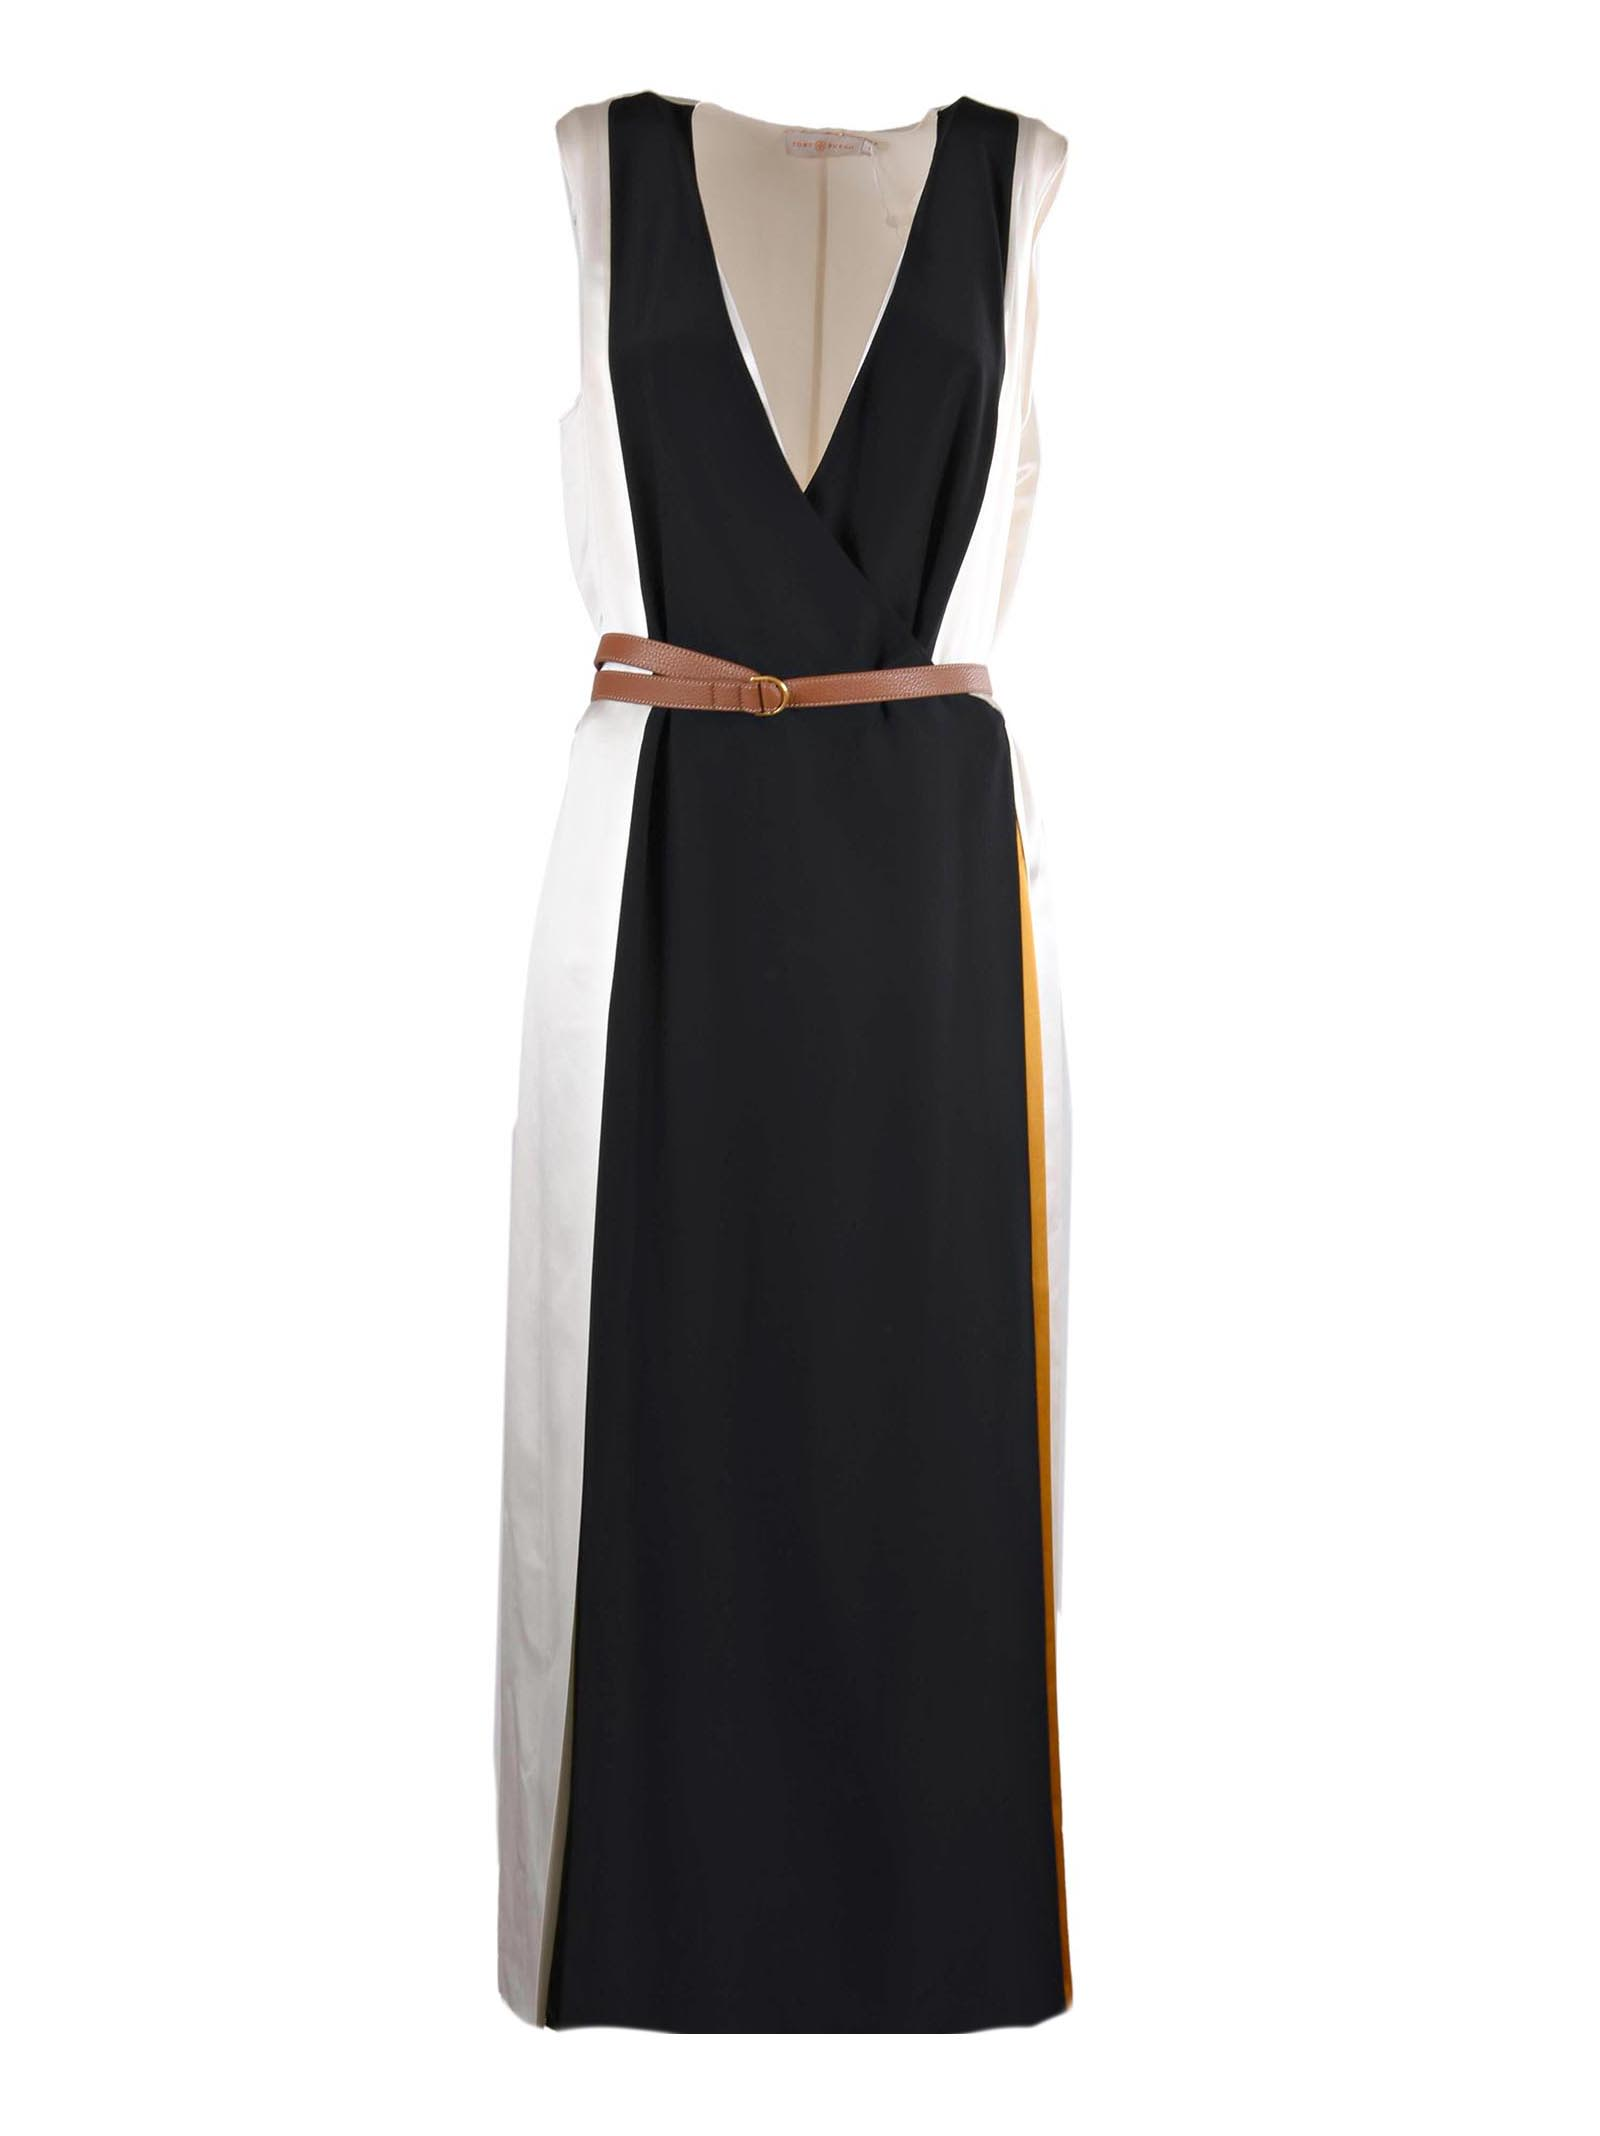 Dara wool-knit belted dress Tory Burch